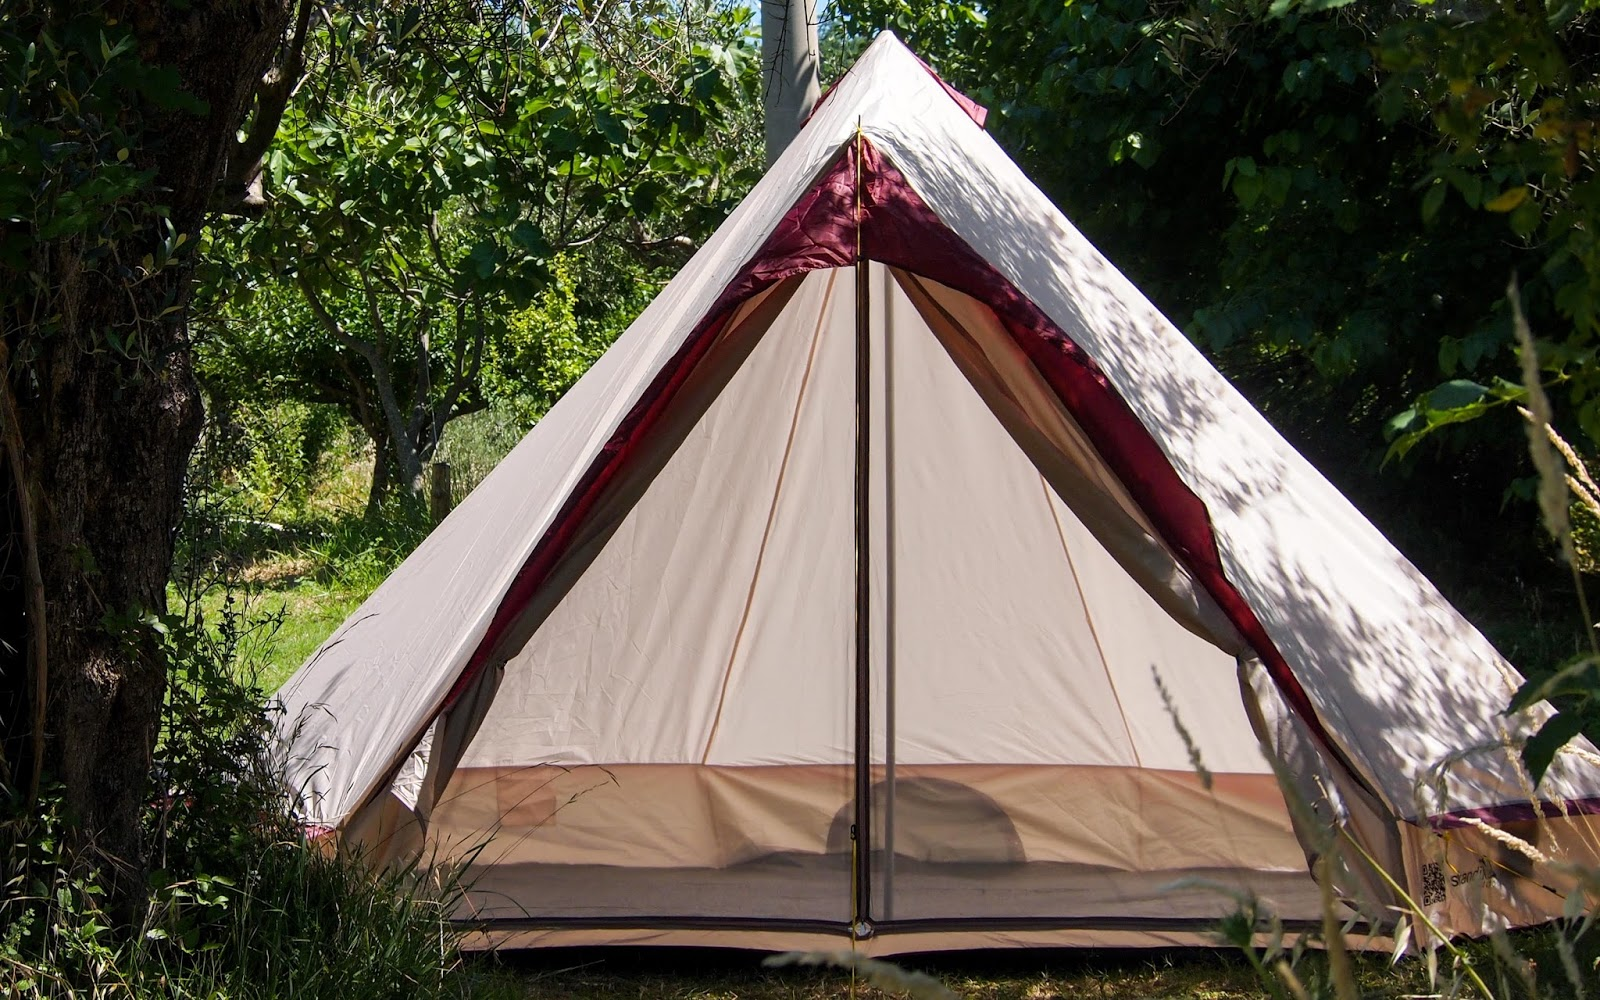 RENT-A-TENT FOR €1!